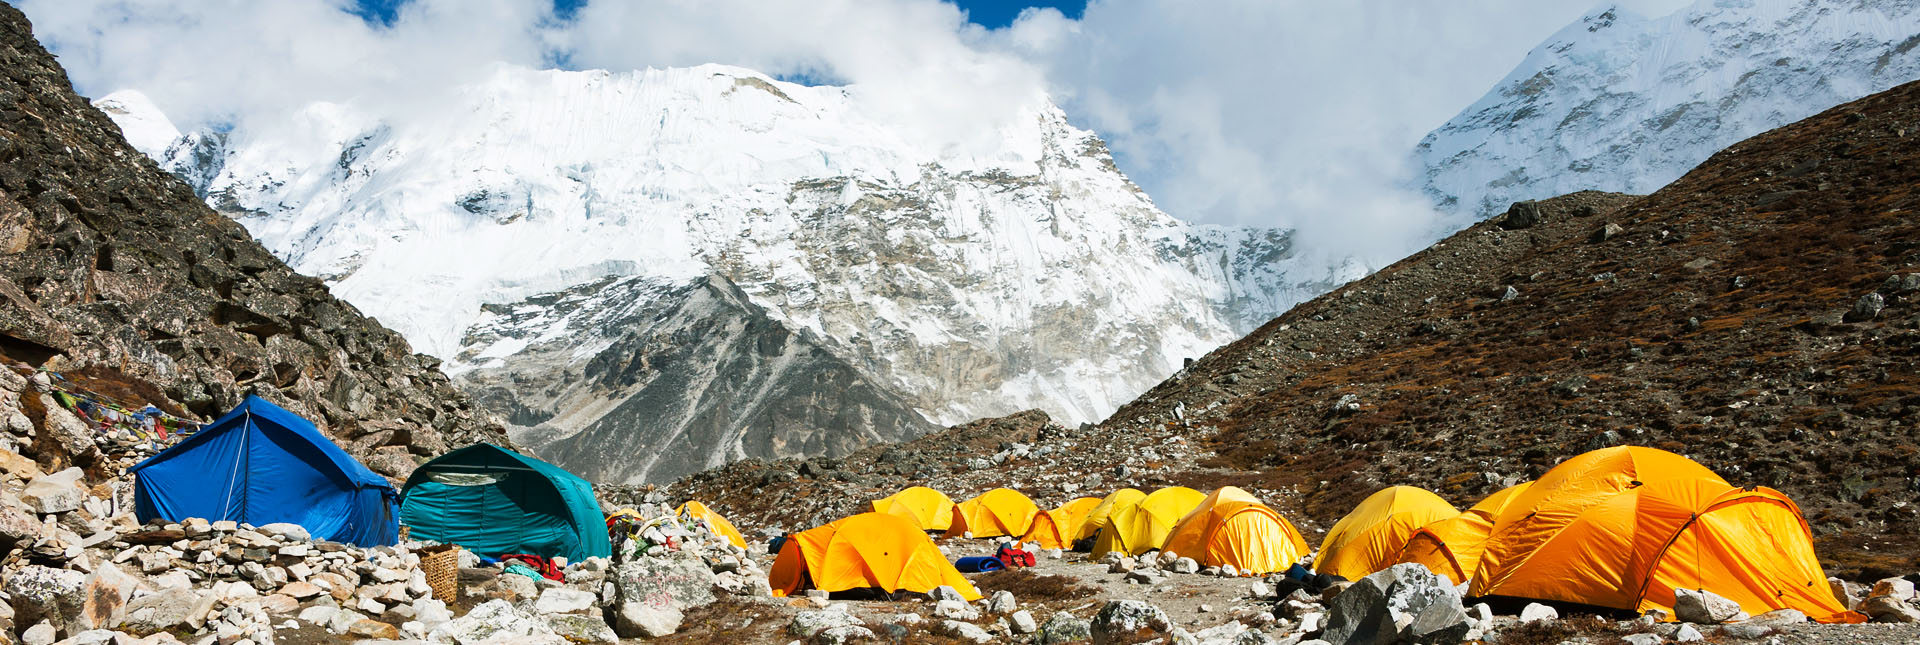 Campsite during the Island Peak Expedition